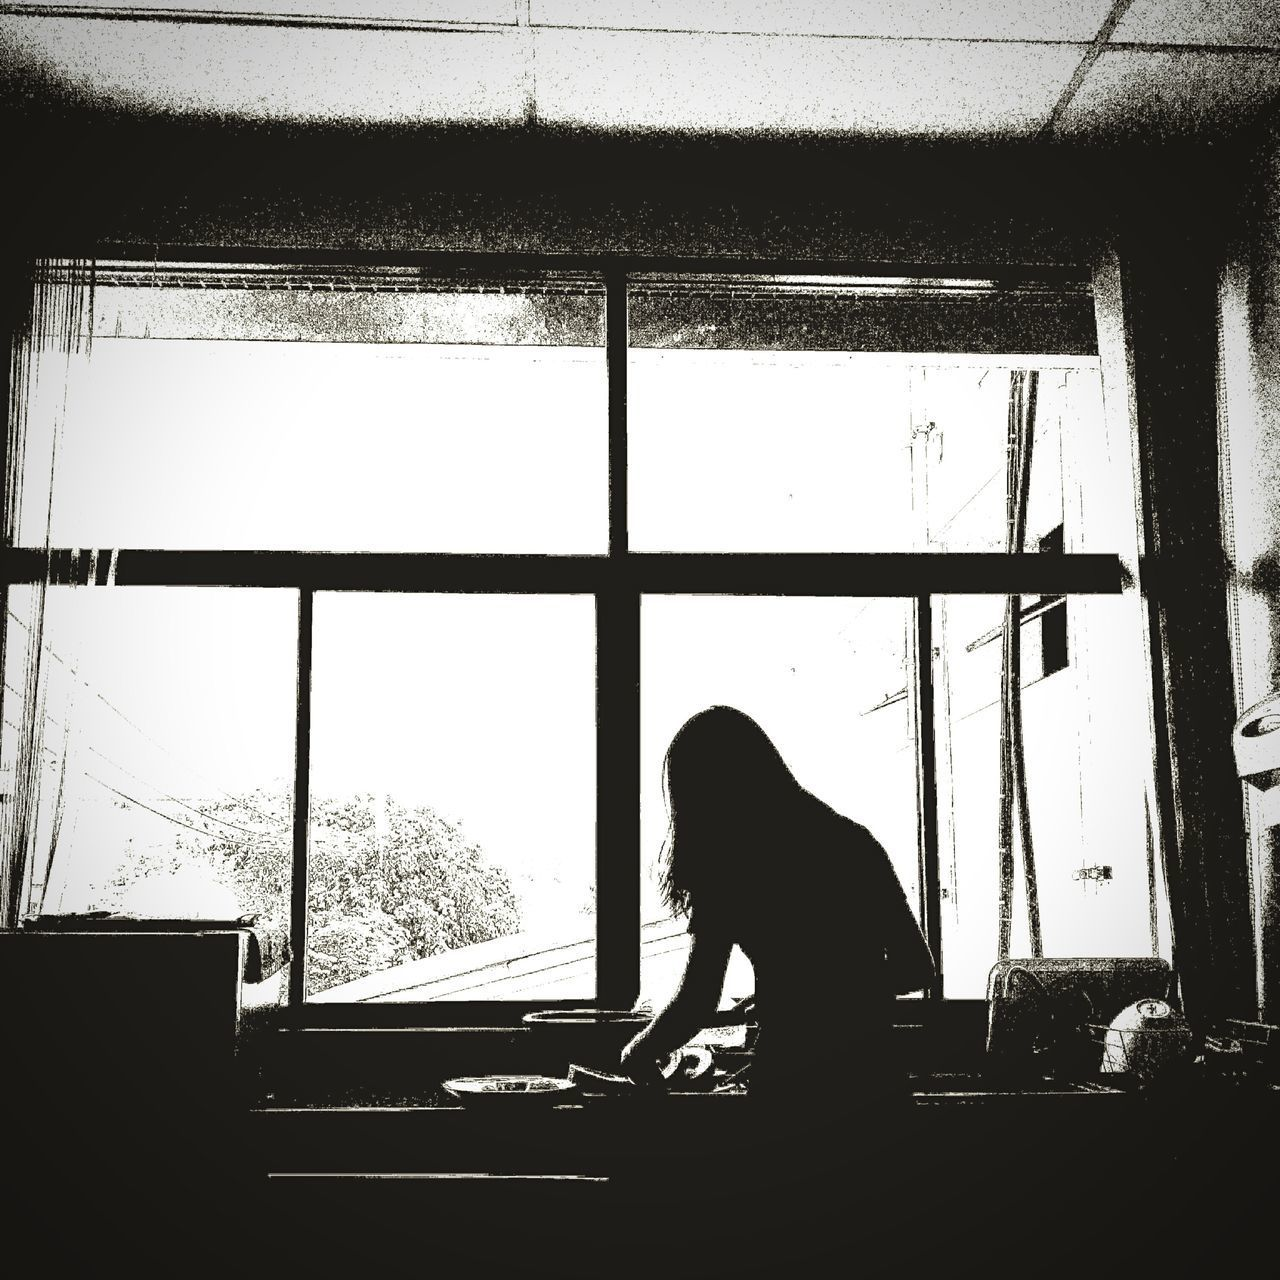 Woman At Work At Home Window Real People One Person Waist Up Silhouette Indoors  Men Sitting Women Day Adult People Blackandwhitephotography Blackandwhite Black & White Black And White Cooking Cooking Time